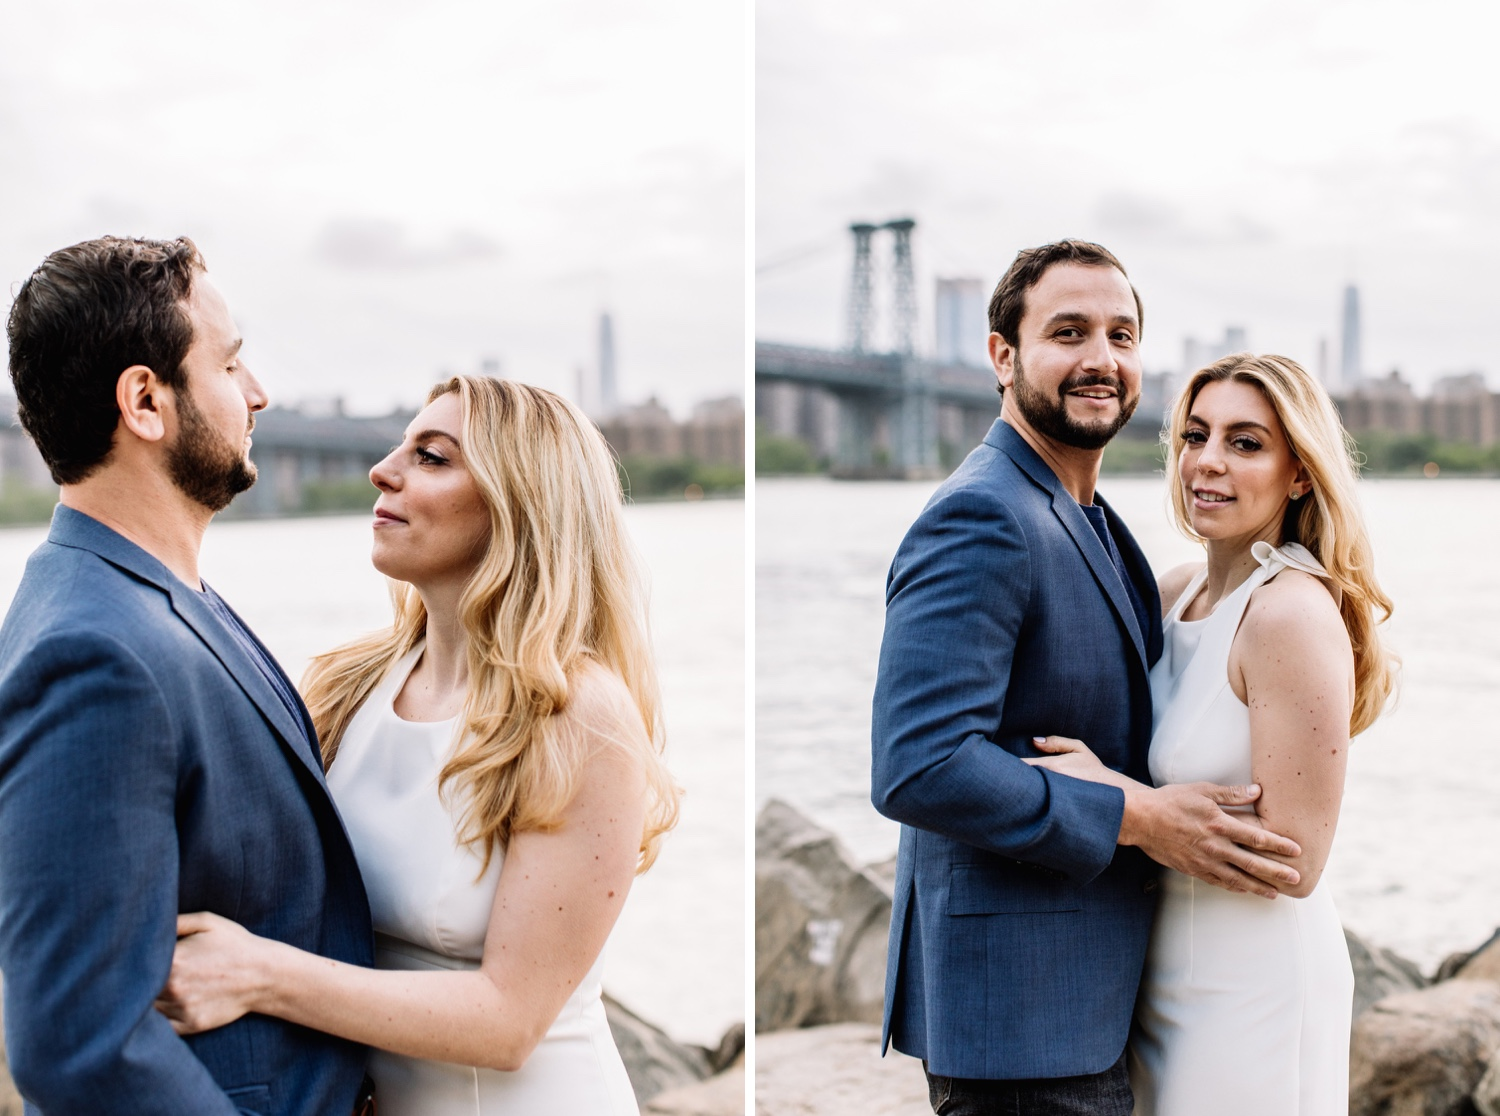 Grand Ferry Park Williamsburg Engagement Photos - Brooklyn NYC